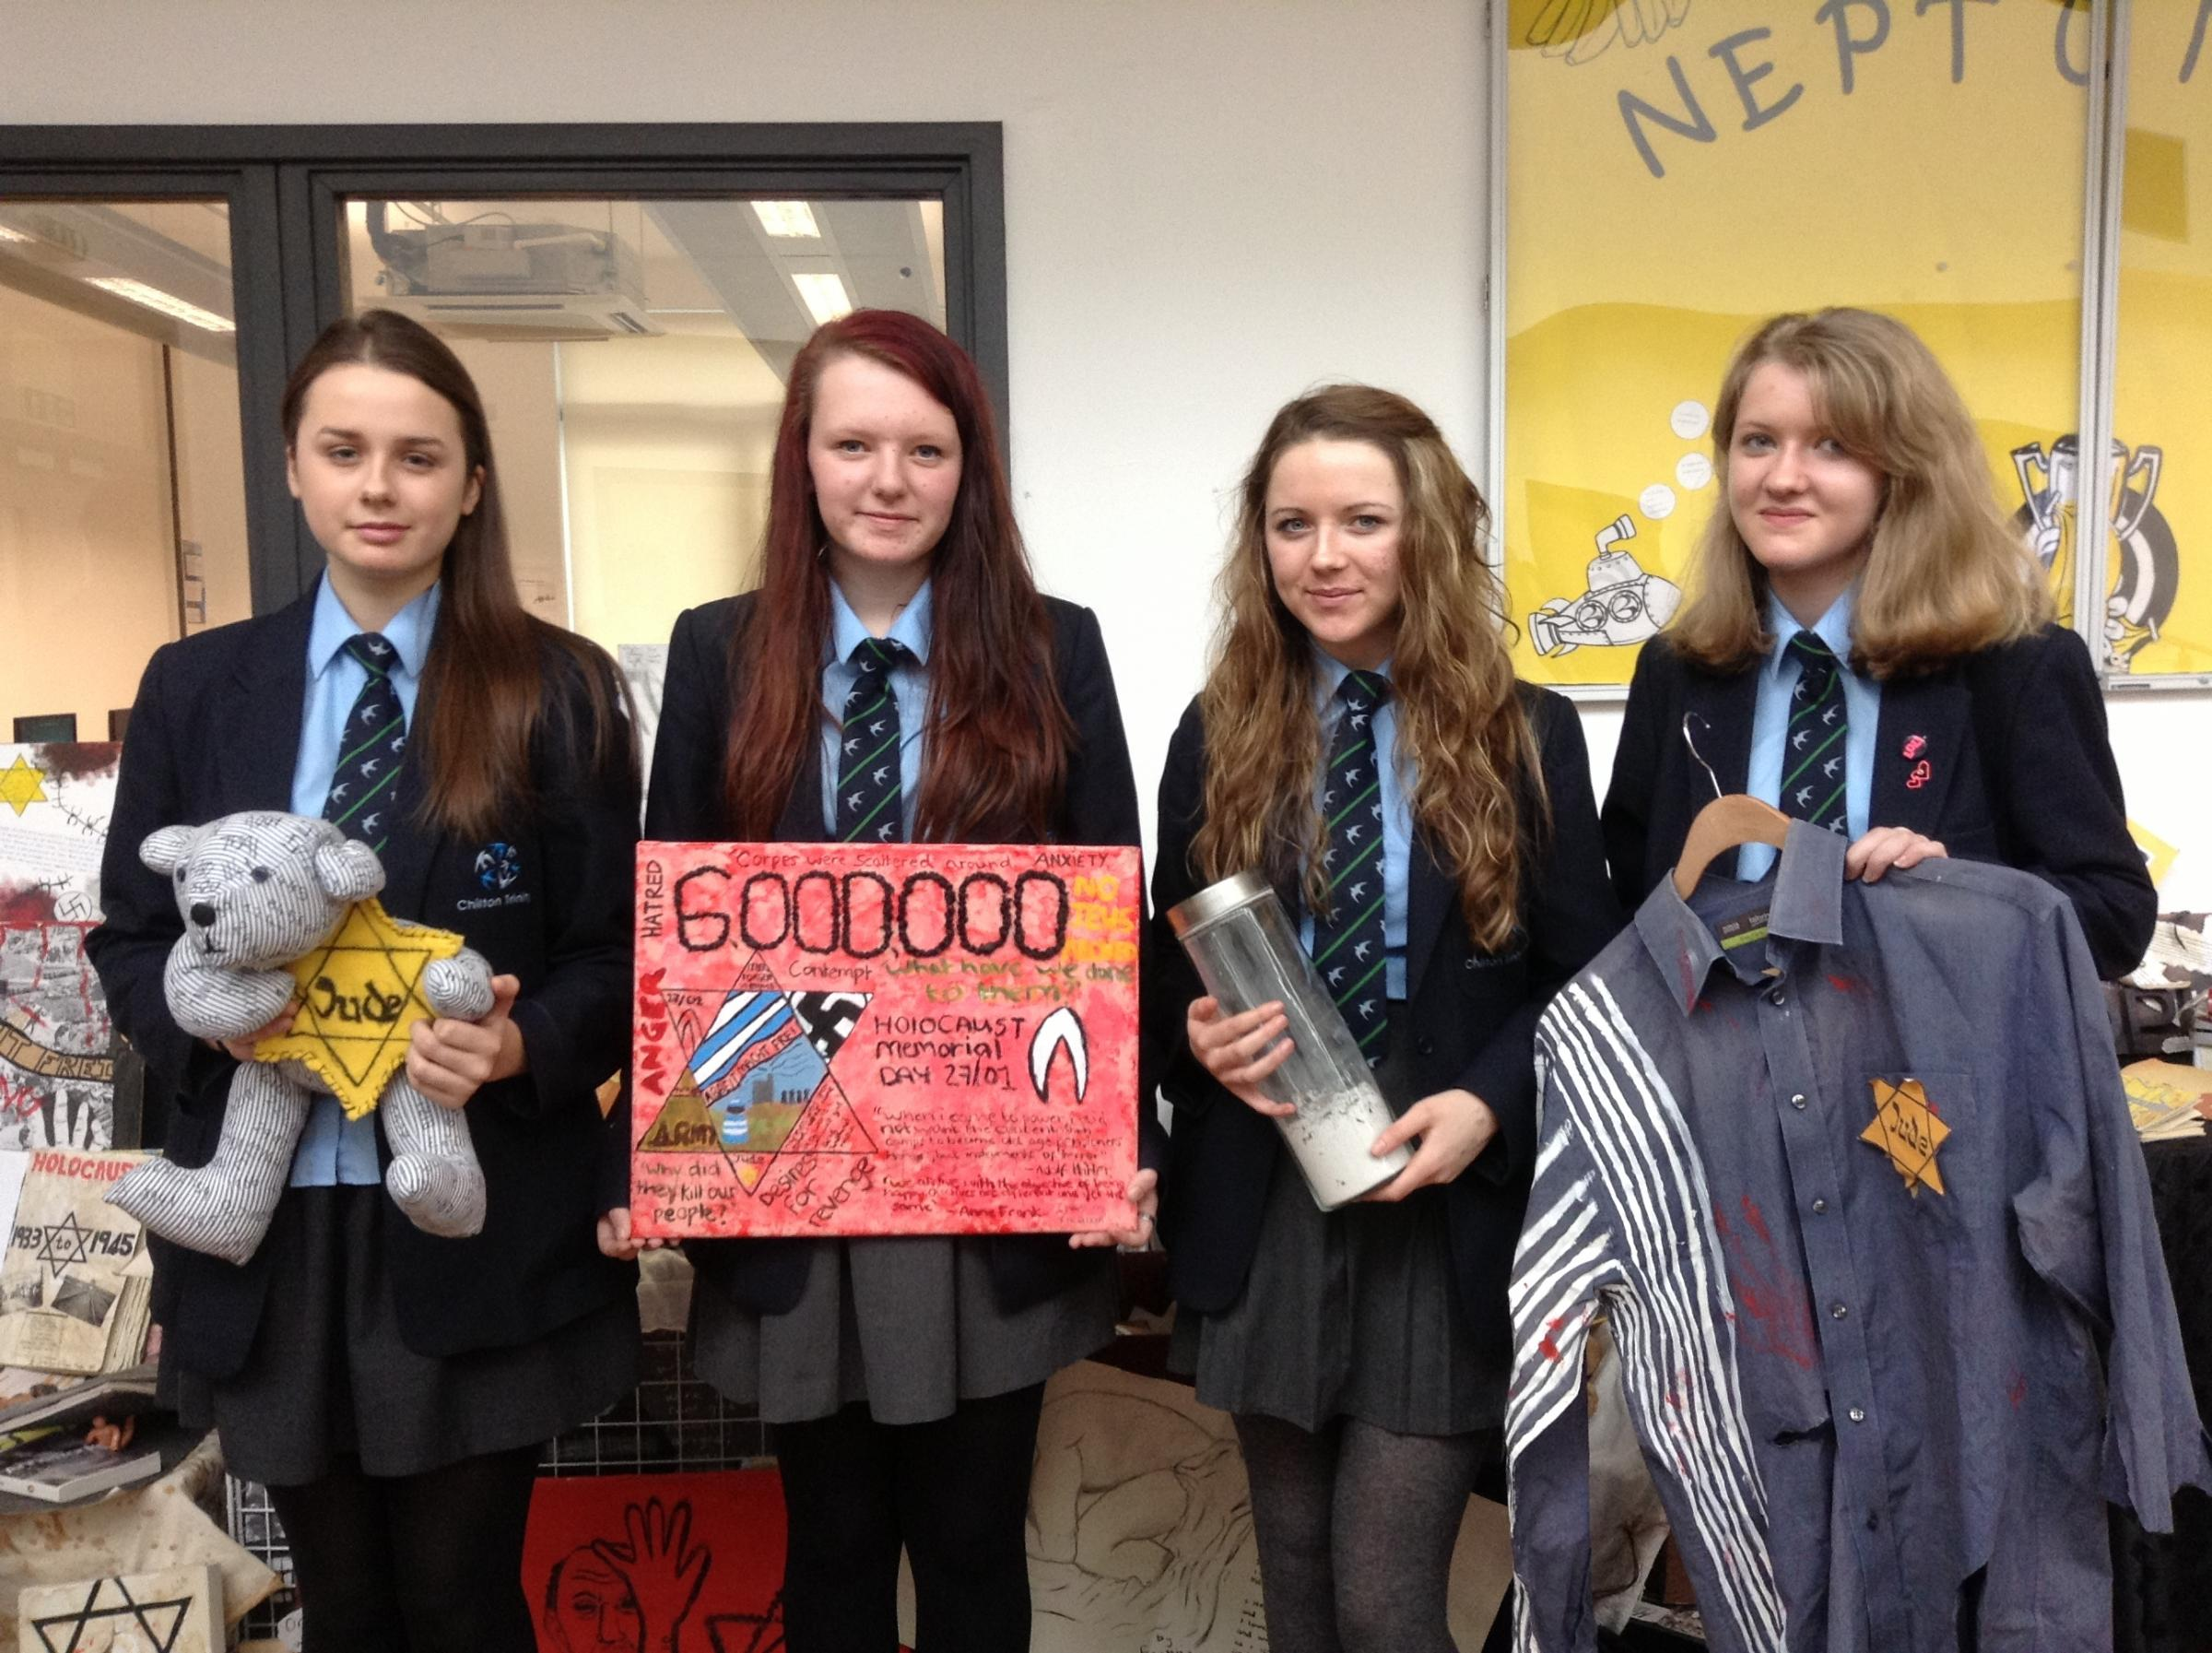 Chilton students appeal for help creating huge Holocaust memorial